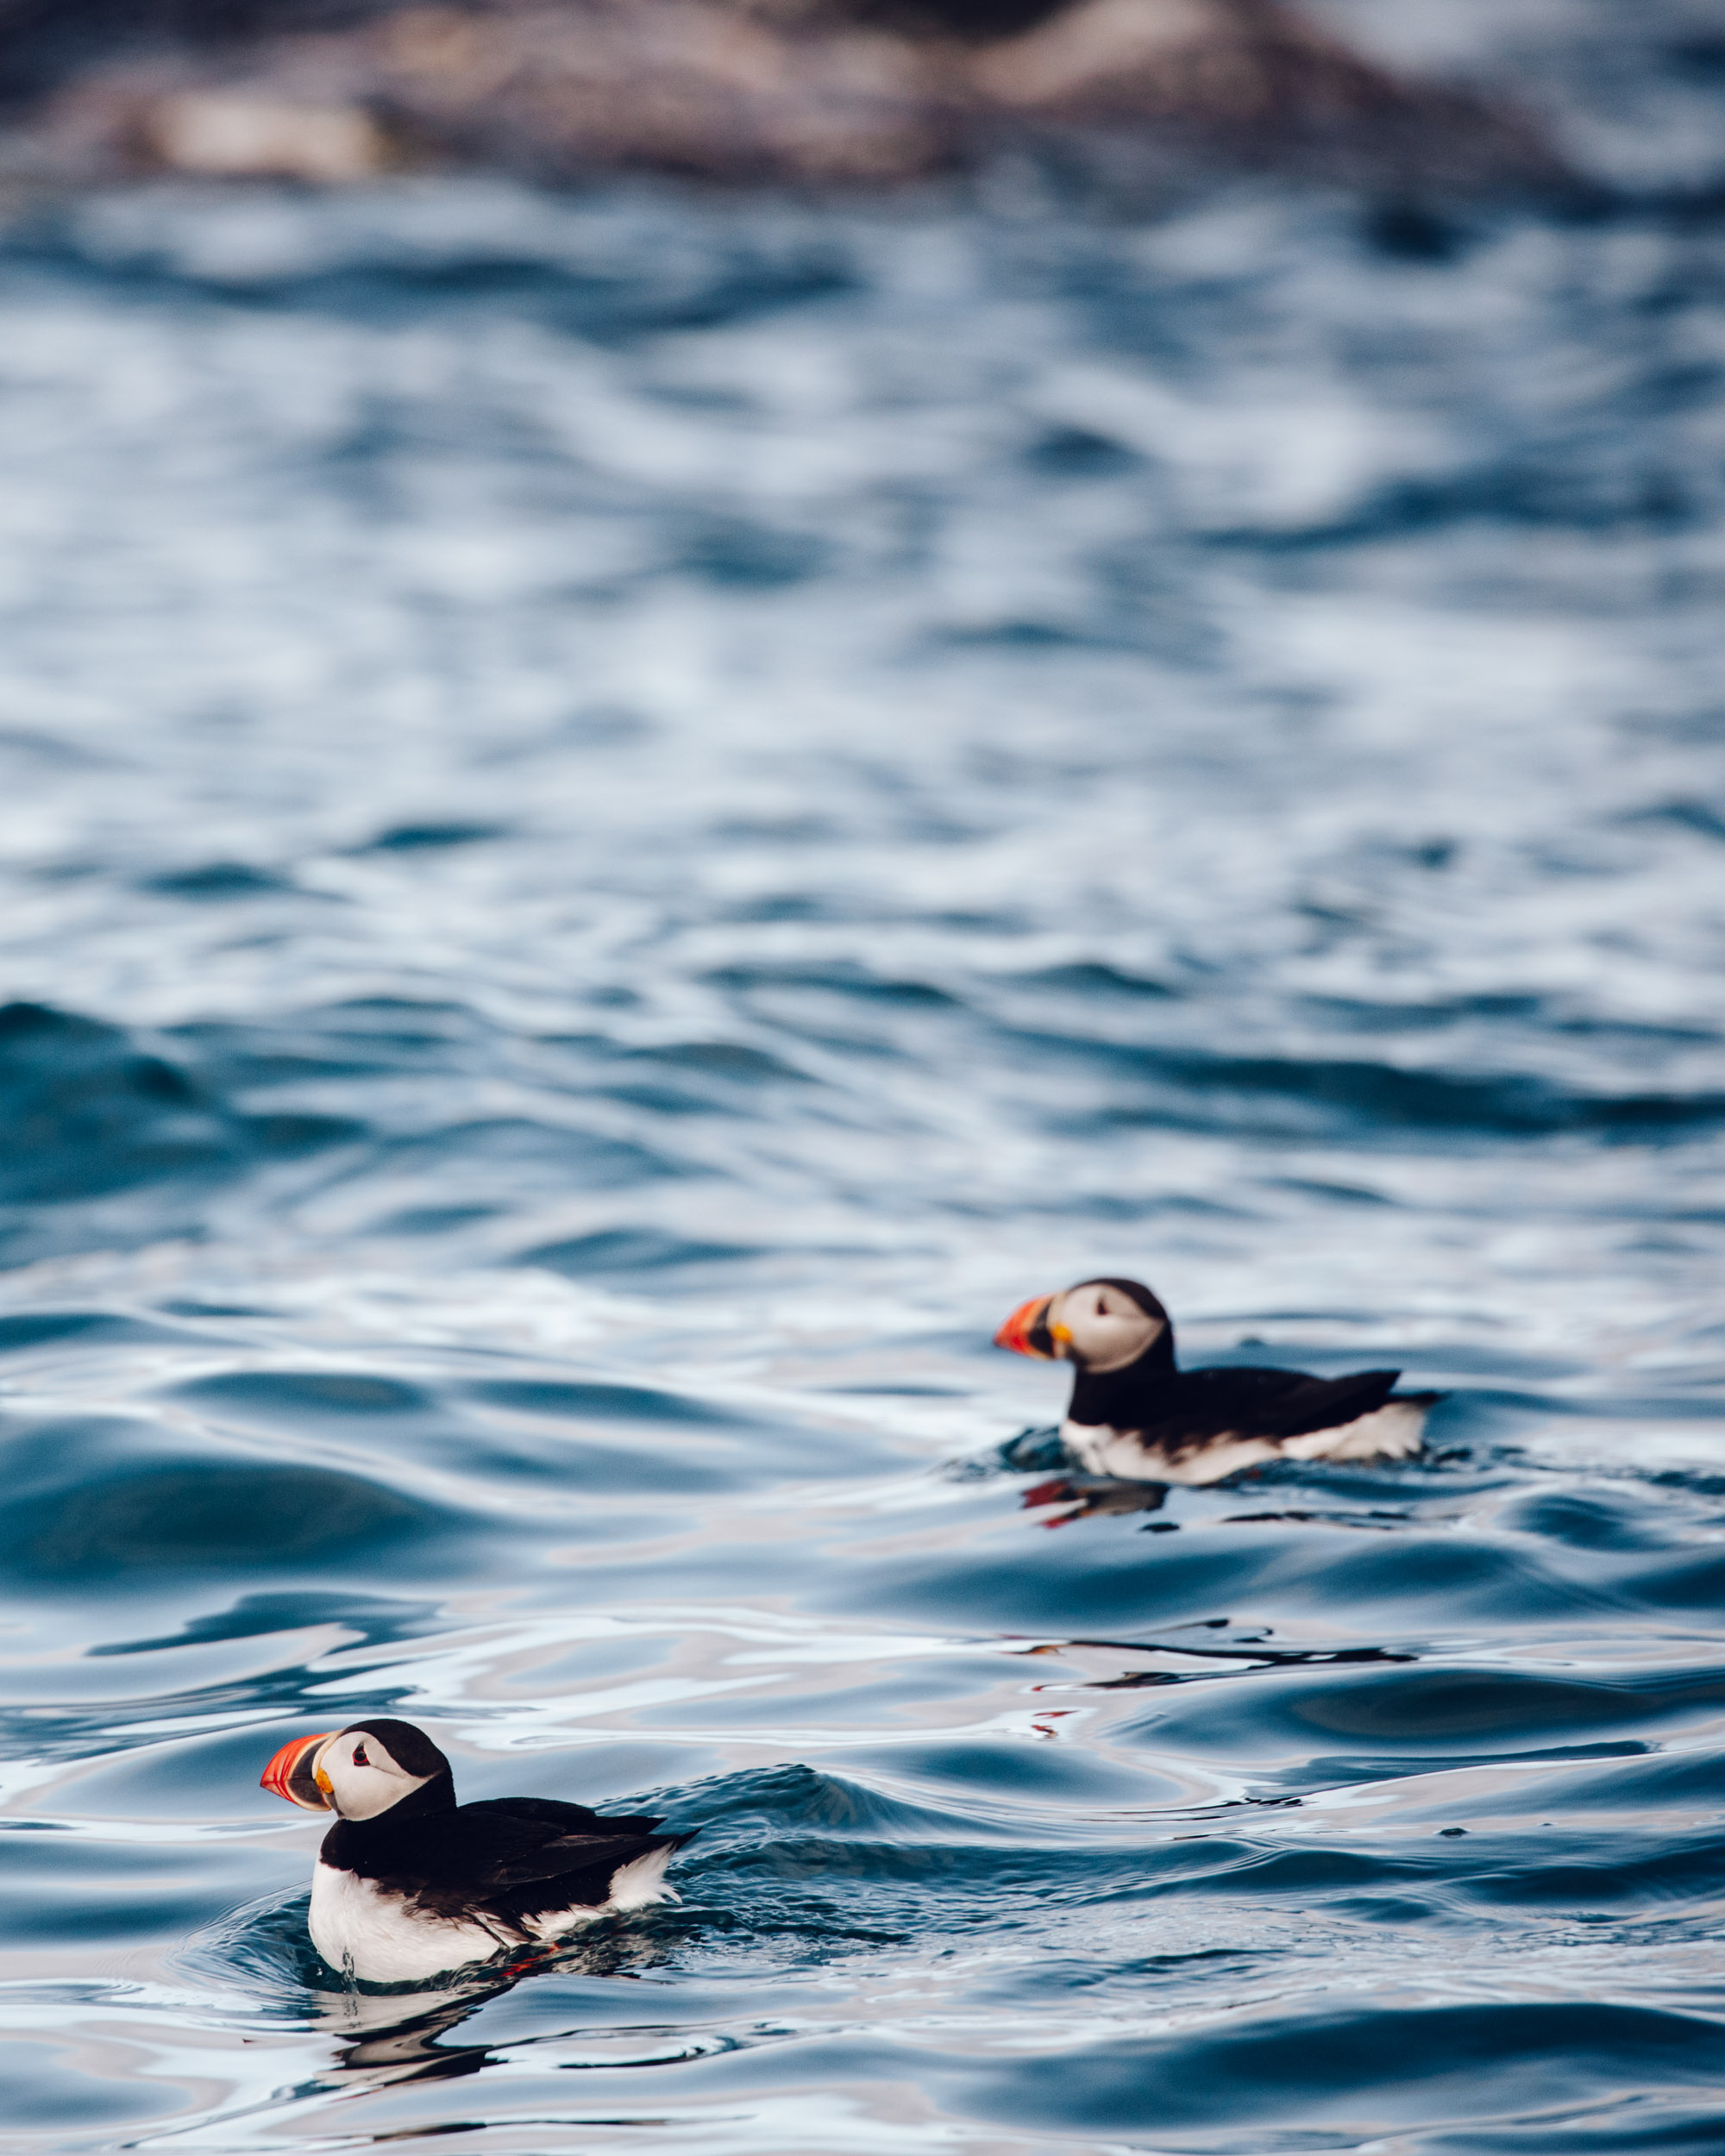 Puffins in Svalbard, Spitsbergen, Norway